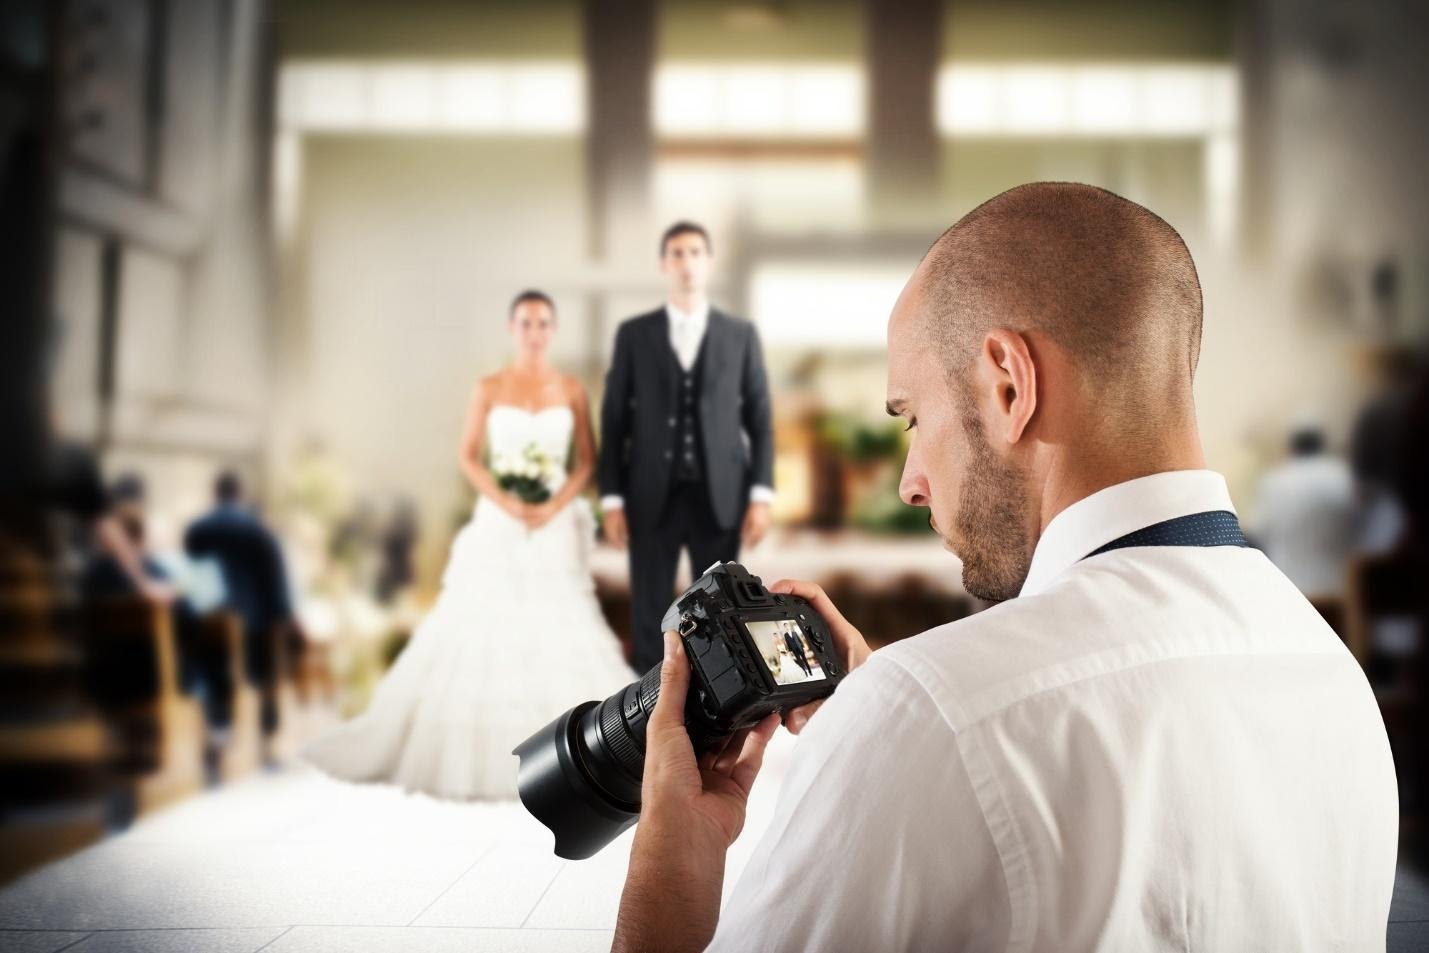 Wedding Photographers In New Jersey – How to Choose the Best One